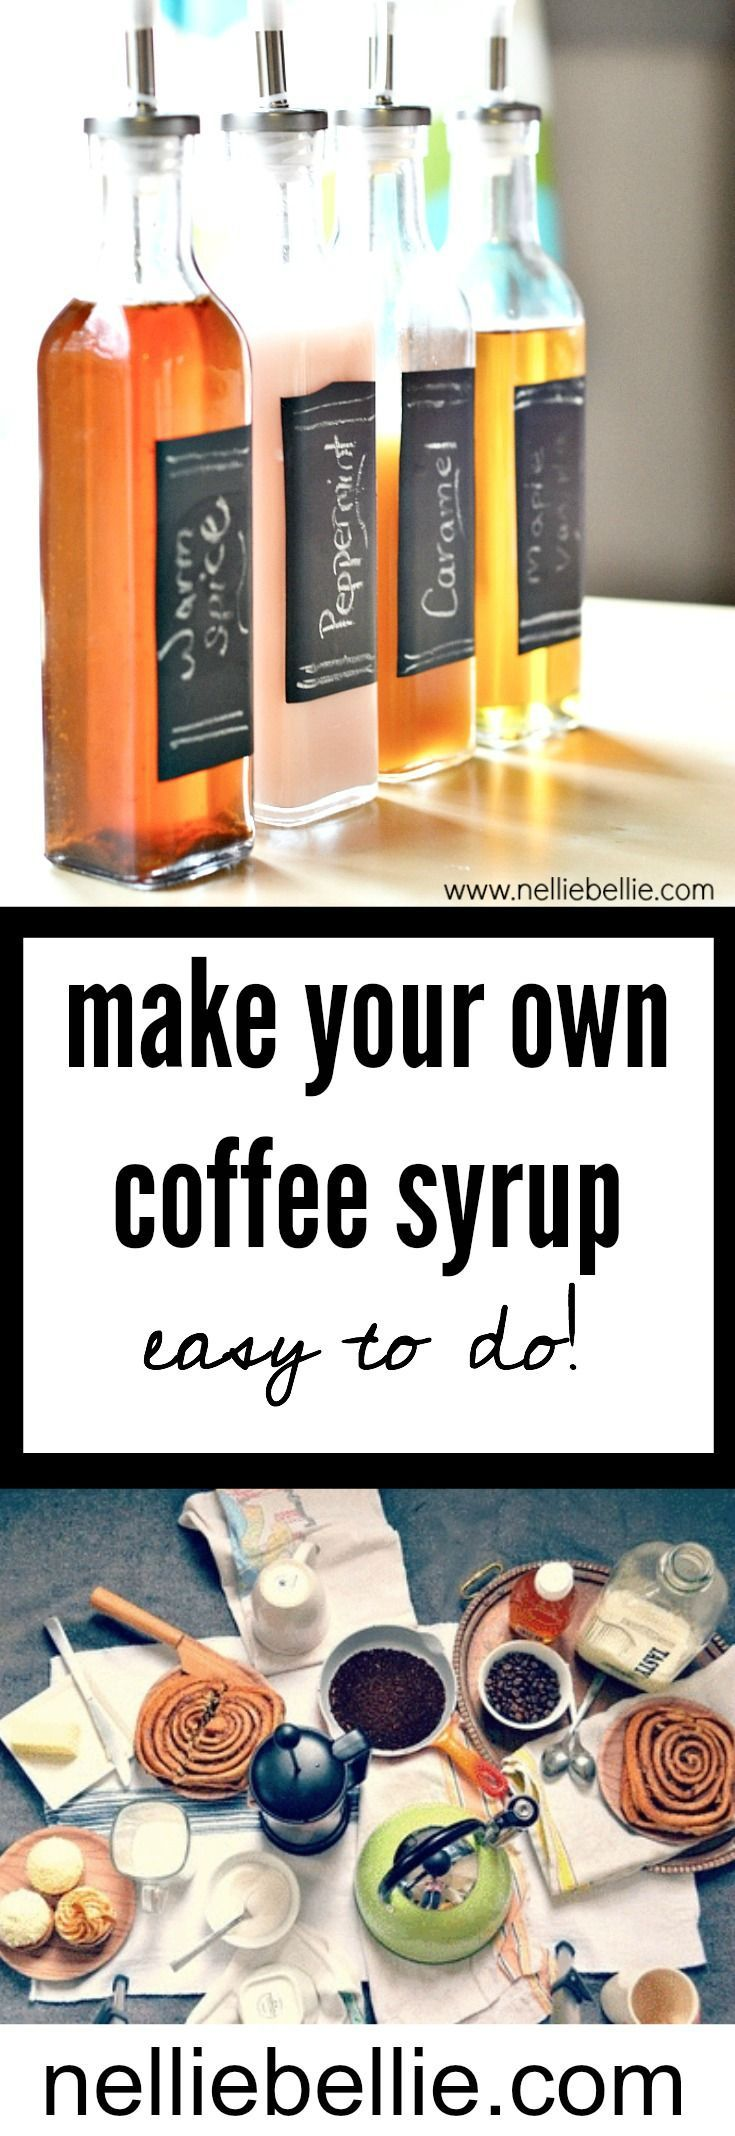 Make your own Coffee Syrup...easy to do!! And customize! This is a great idea to make as hostess gifts or gifts to give to your friends who come over for dinner. http://www.nelliebellie.com/homemade-coffee-syrup-recipes/#_a5y_p=2805342 #coffeebar